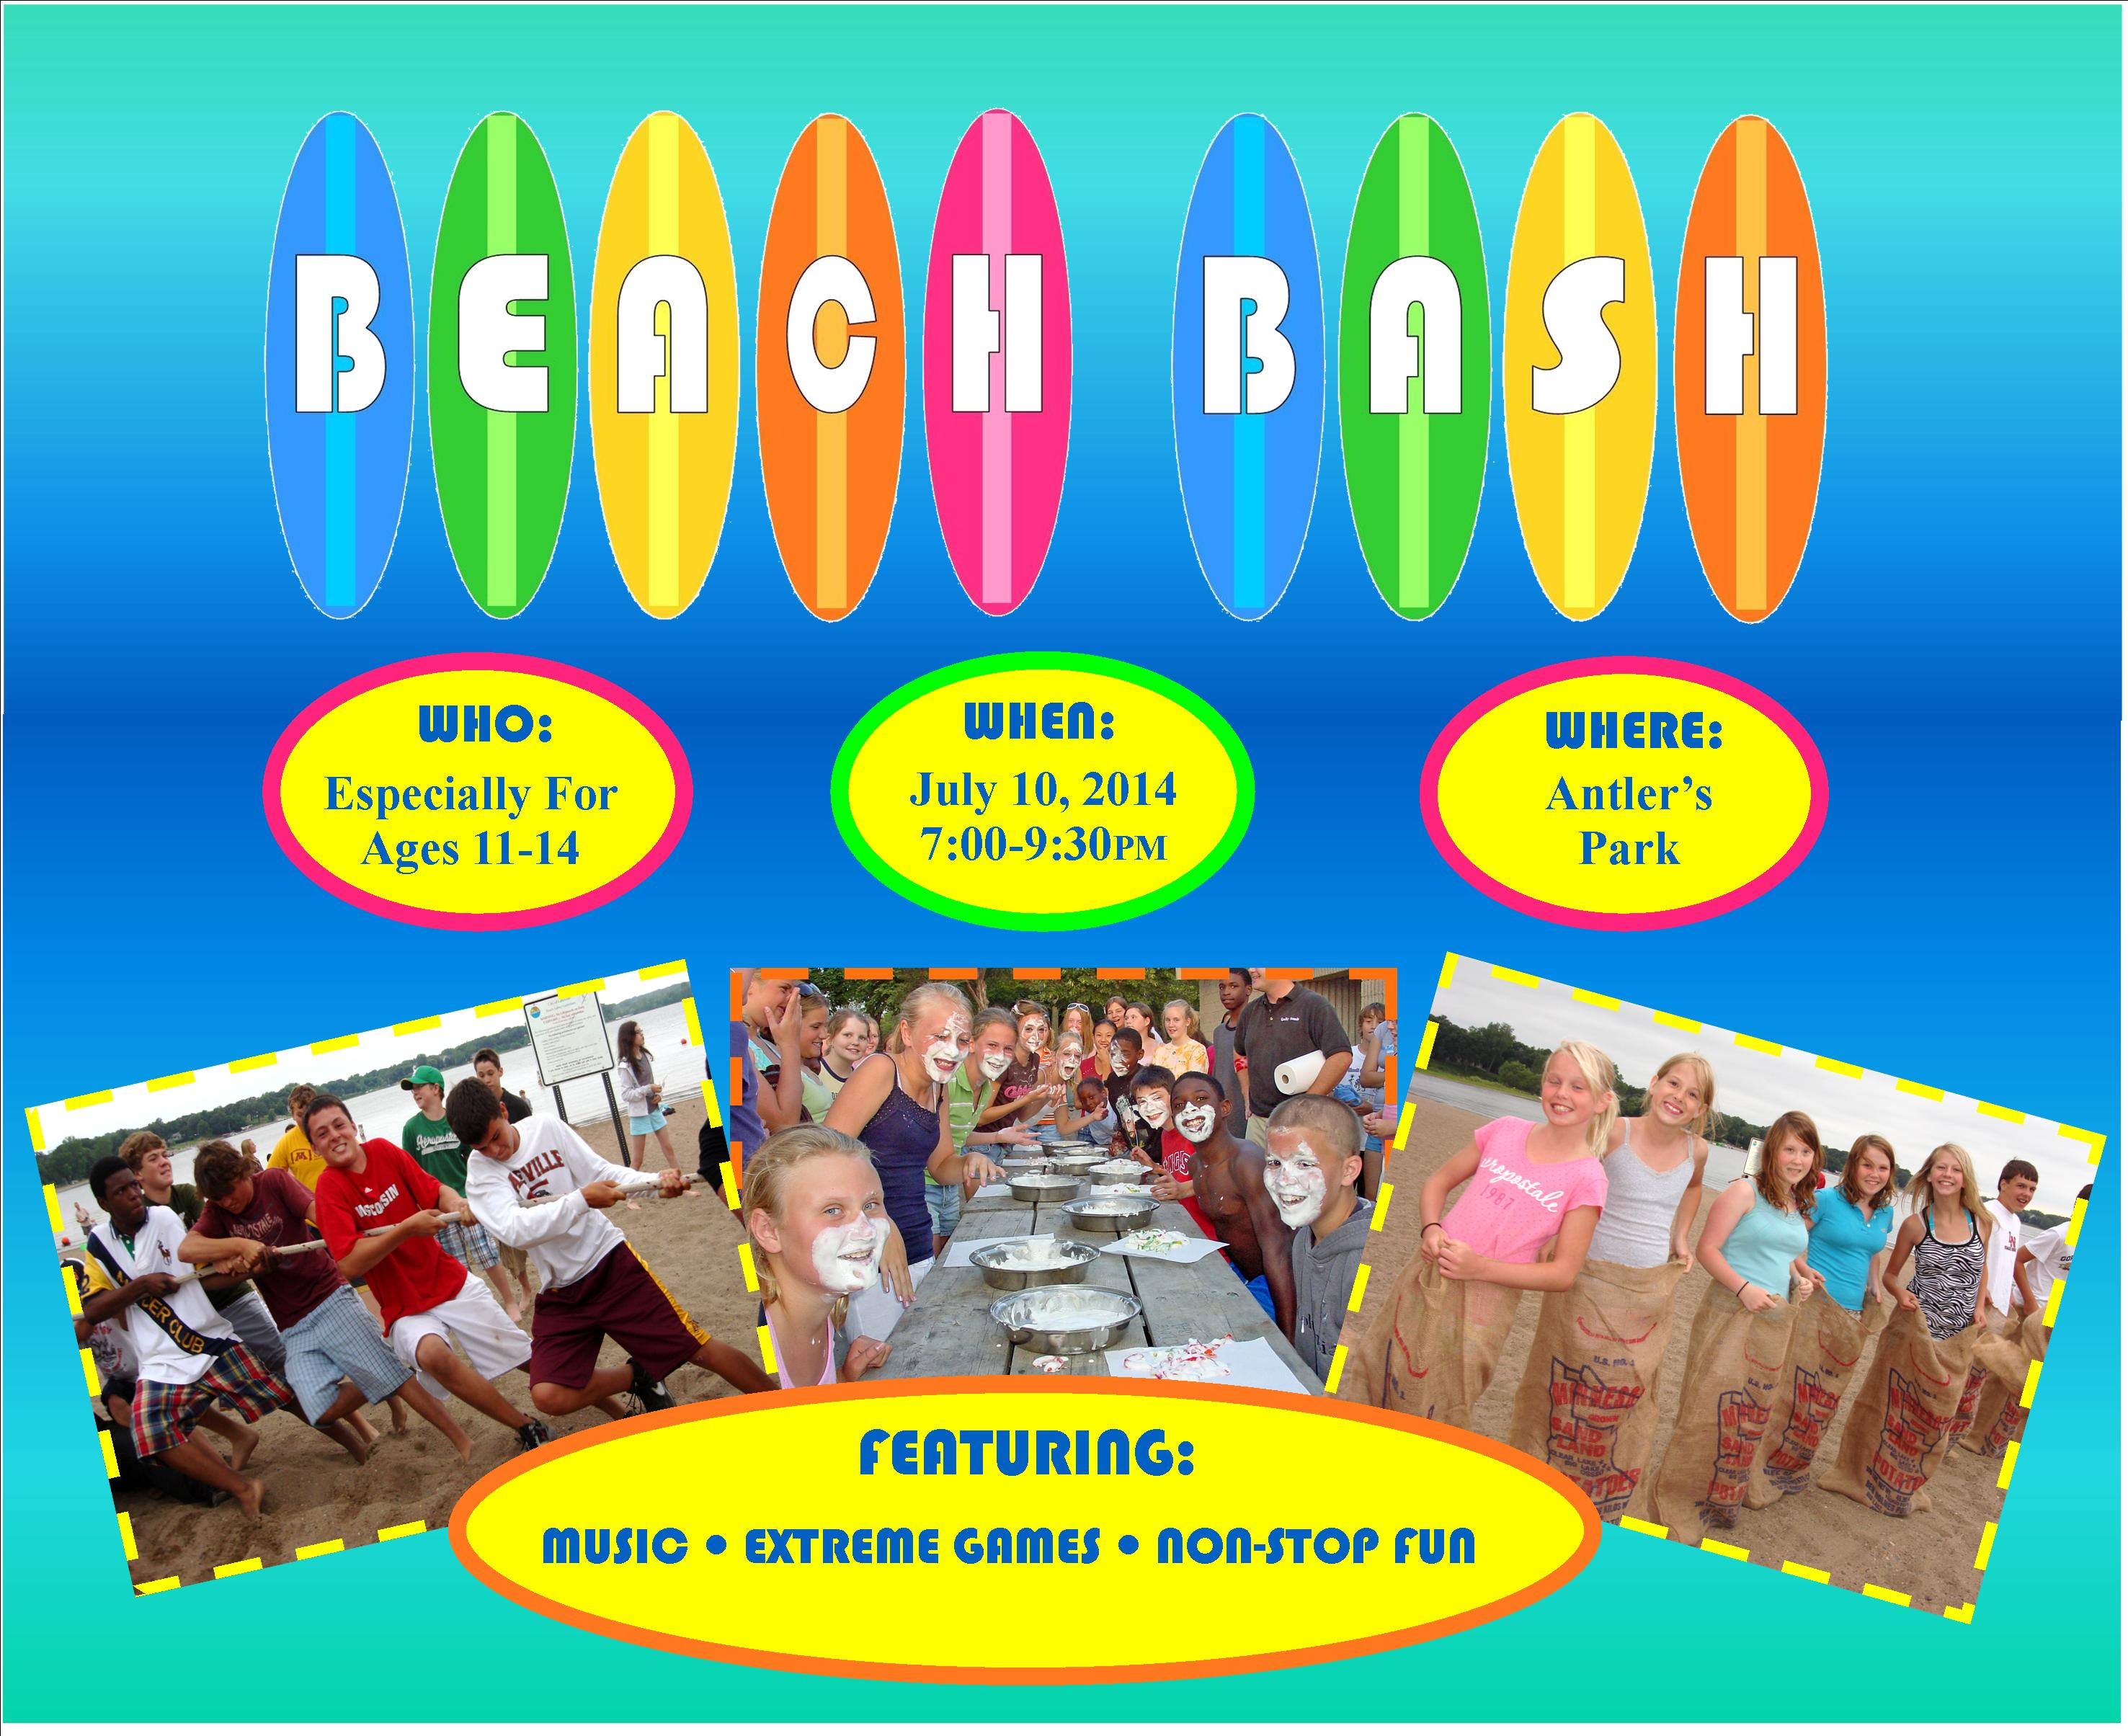 Pan-O-Prog Beach Bash